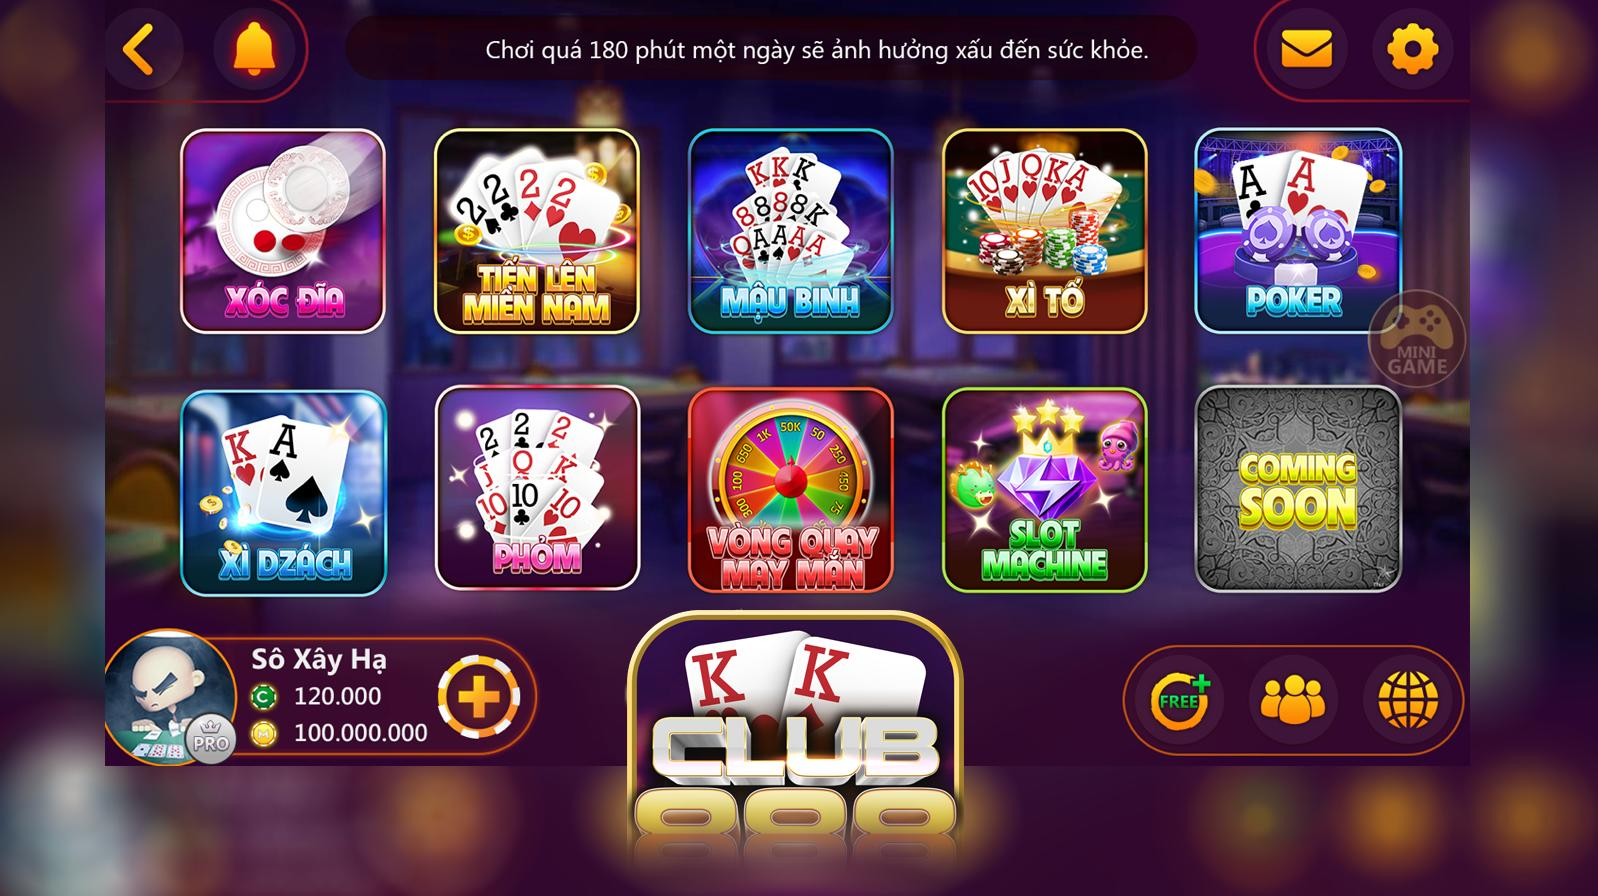 Giao diện cổng Vipgame